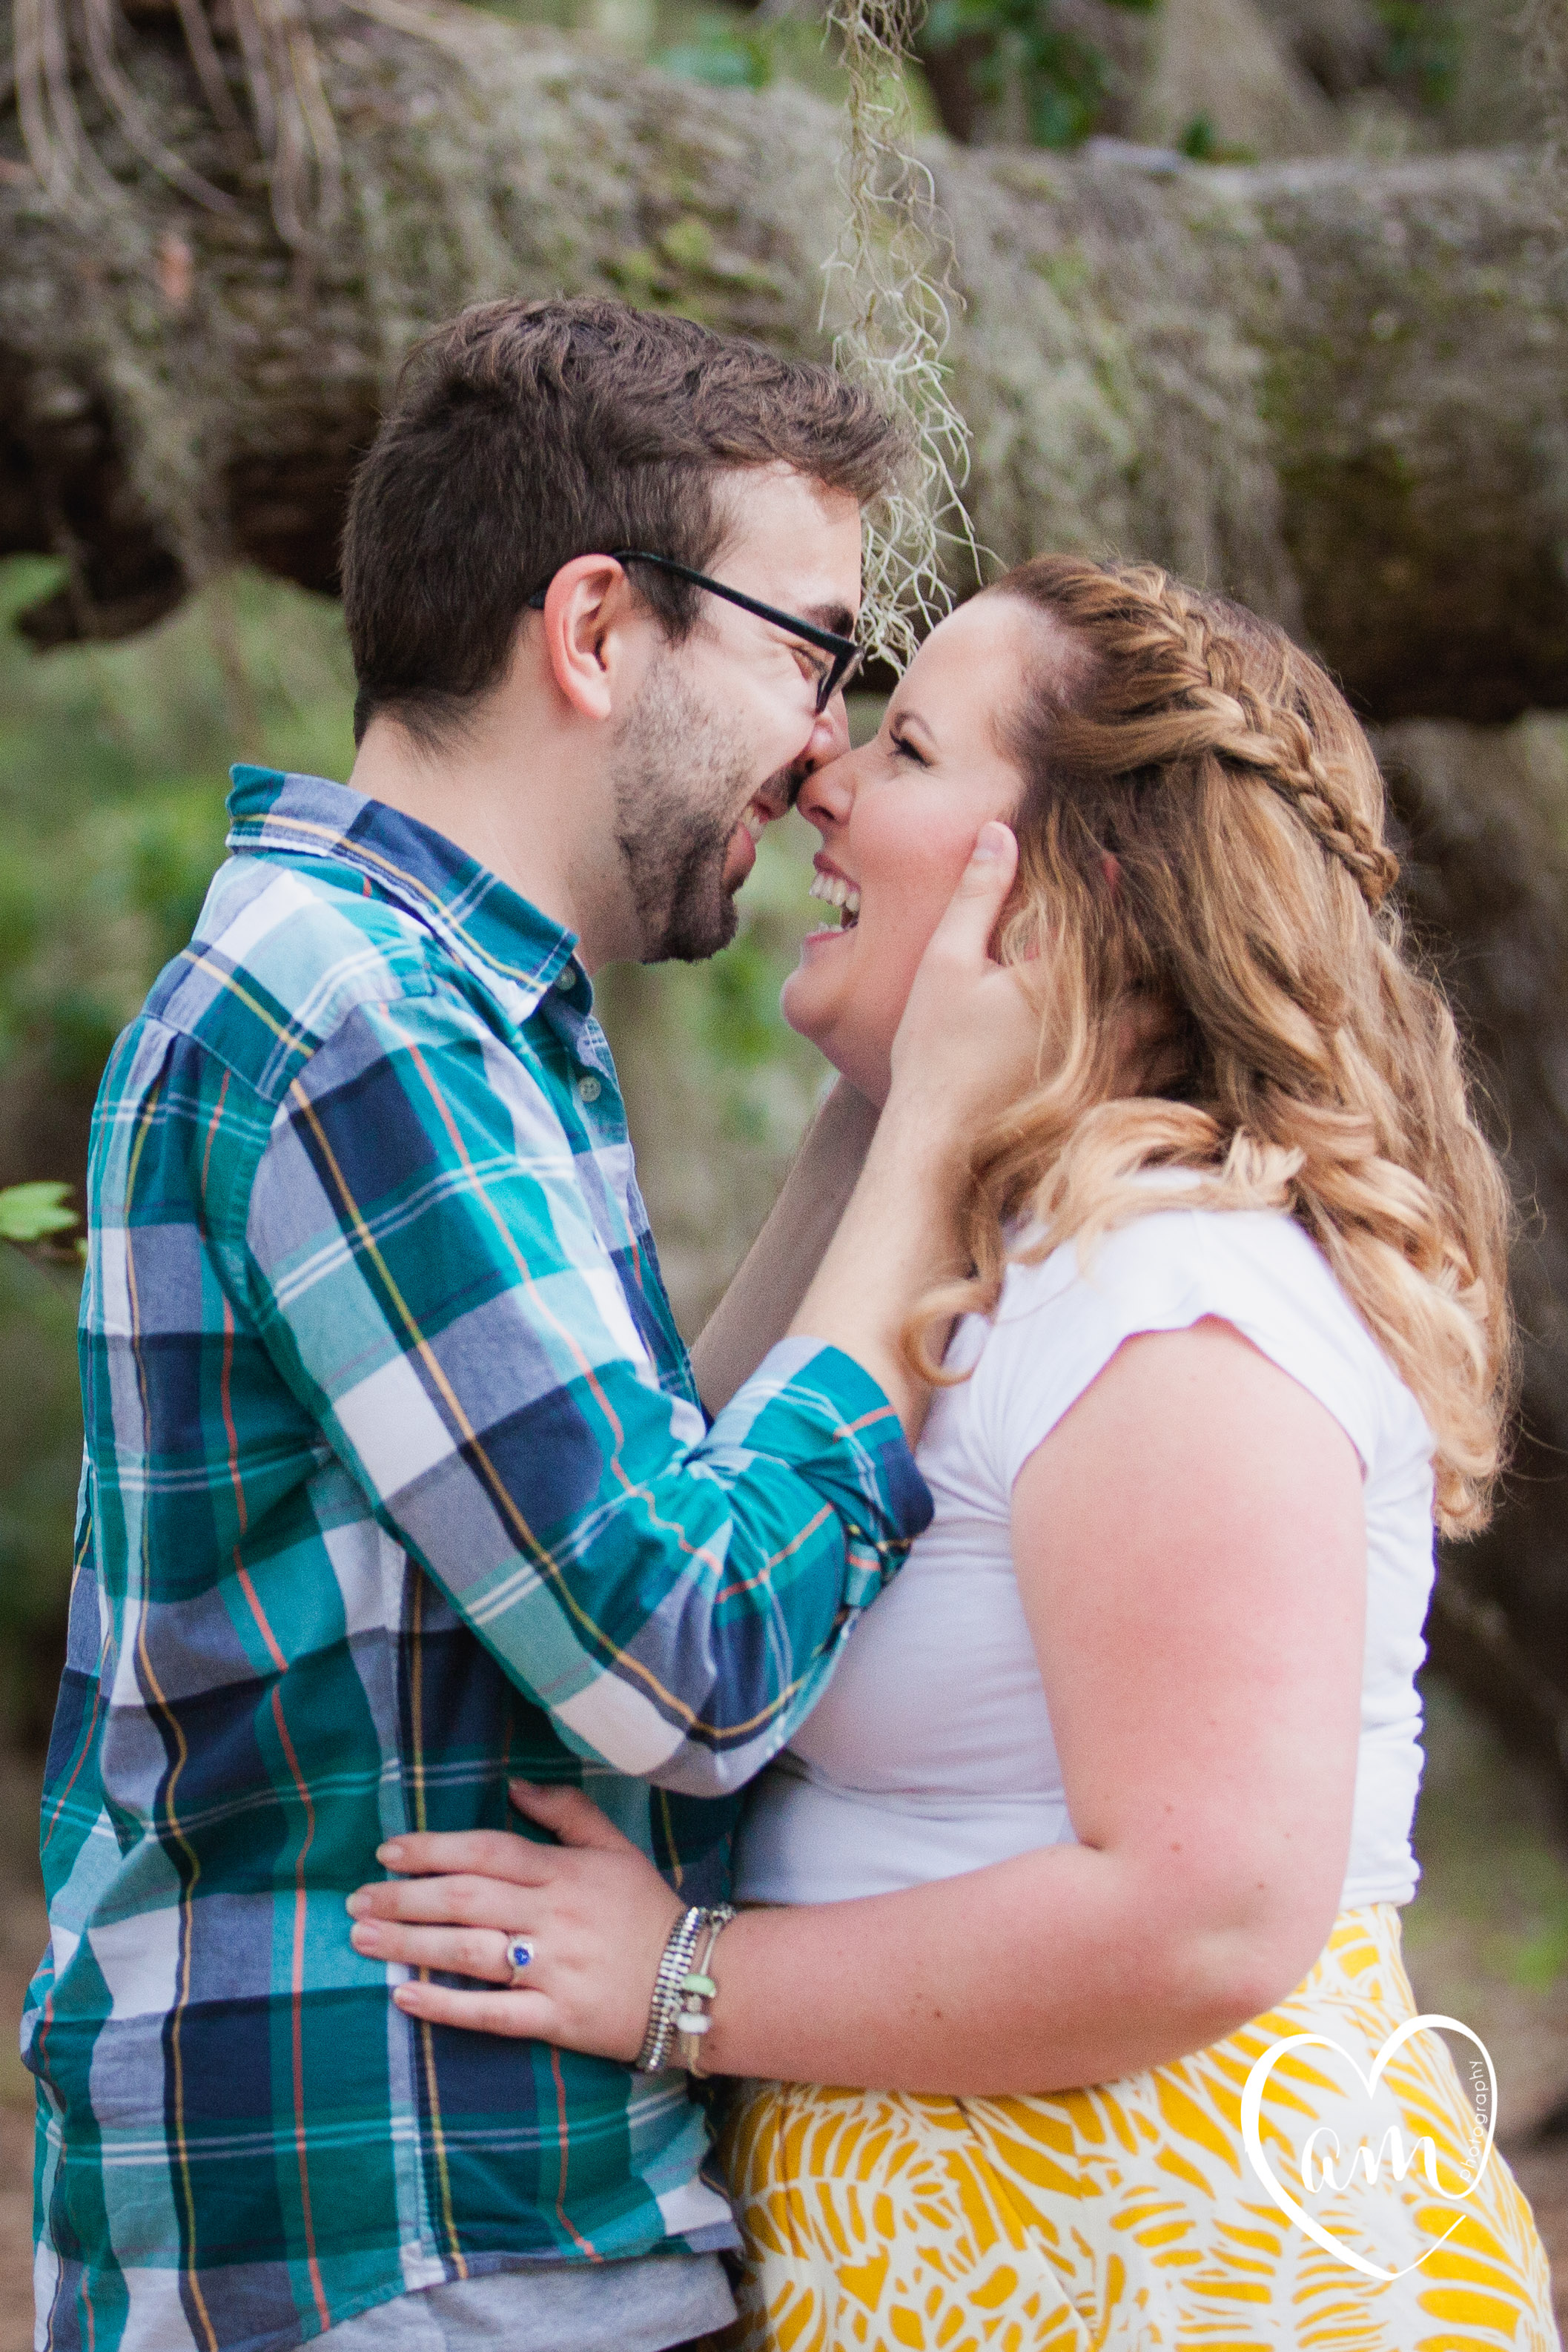 Engagement Photos taken in a Florida forest by destination wedding photographer